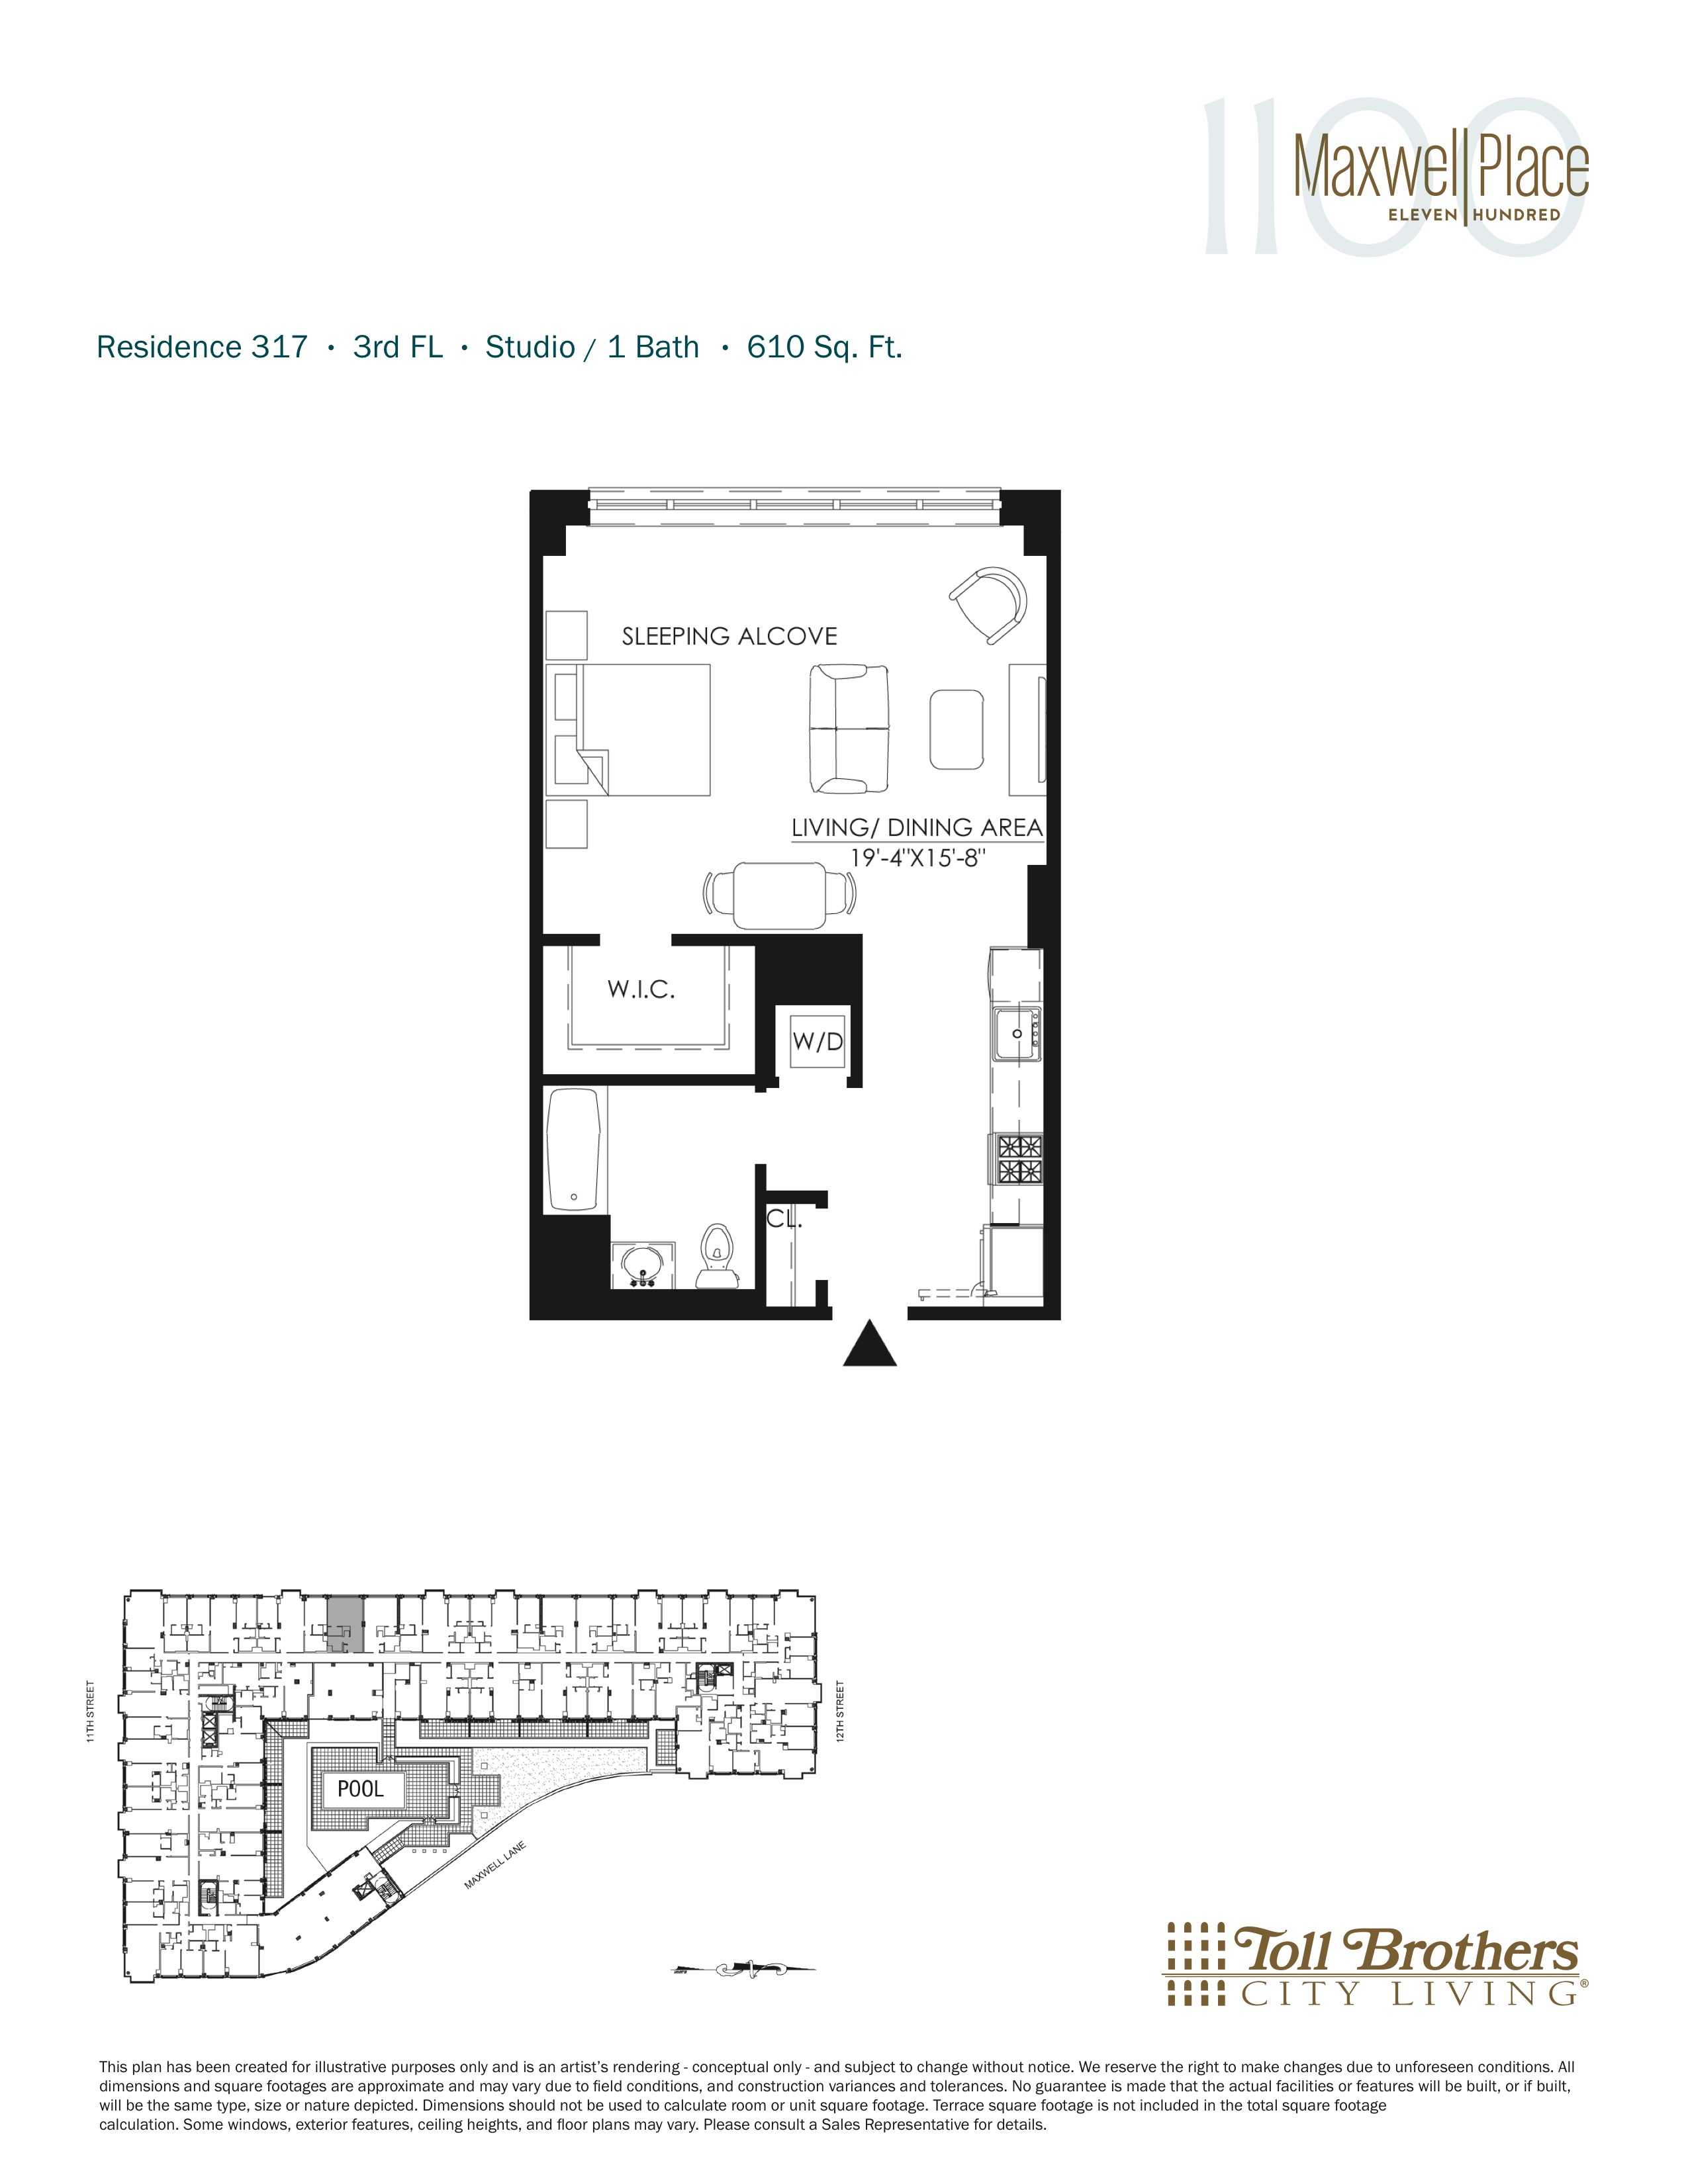 Delightful Floor Plans 7 New York Maxwell Place On